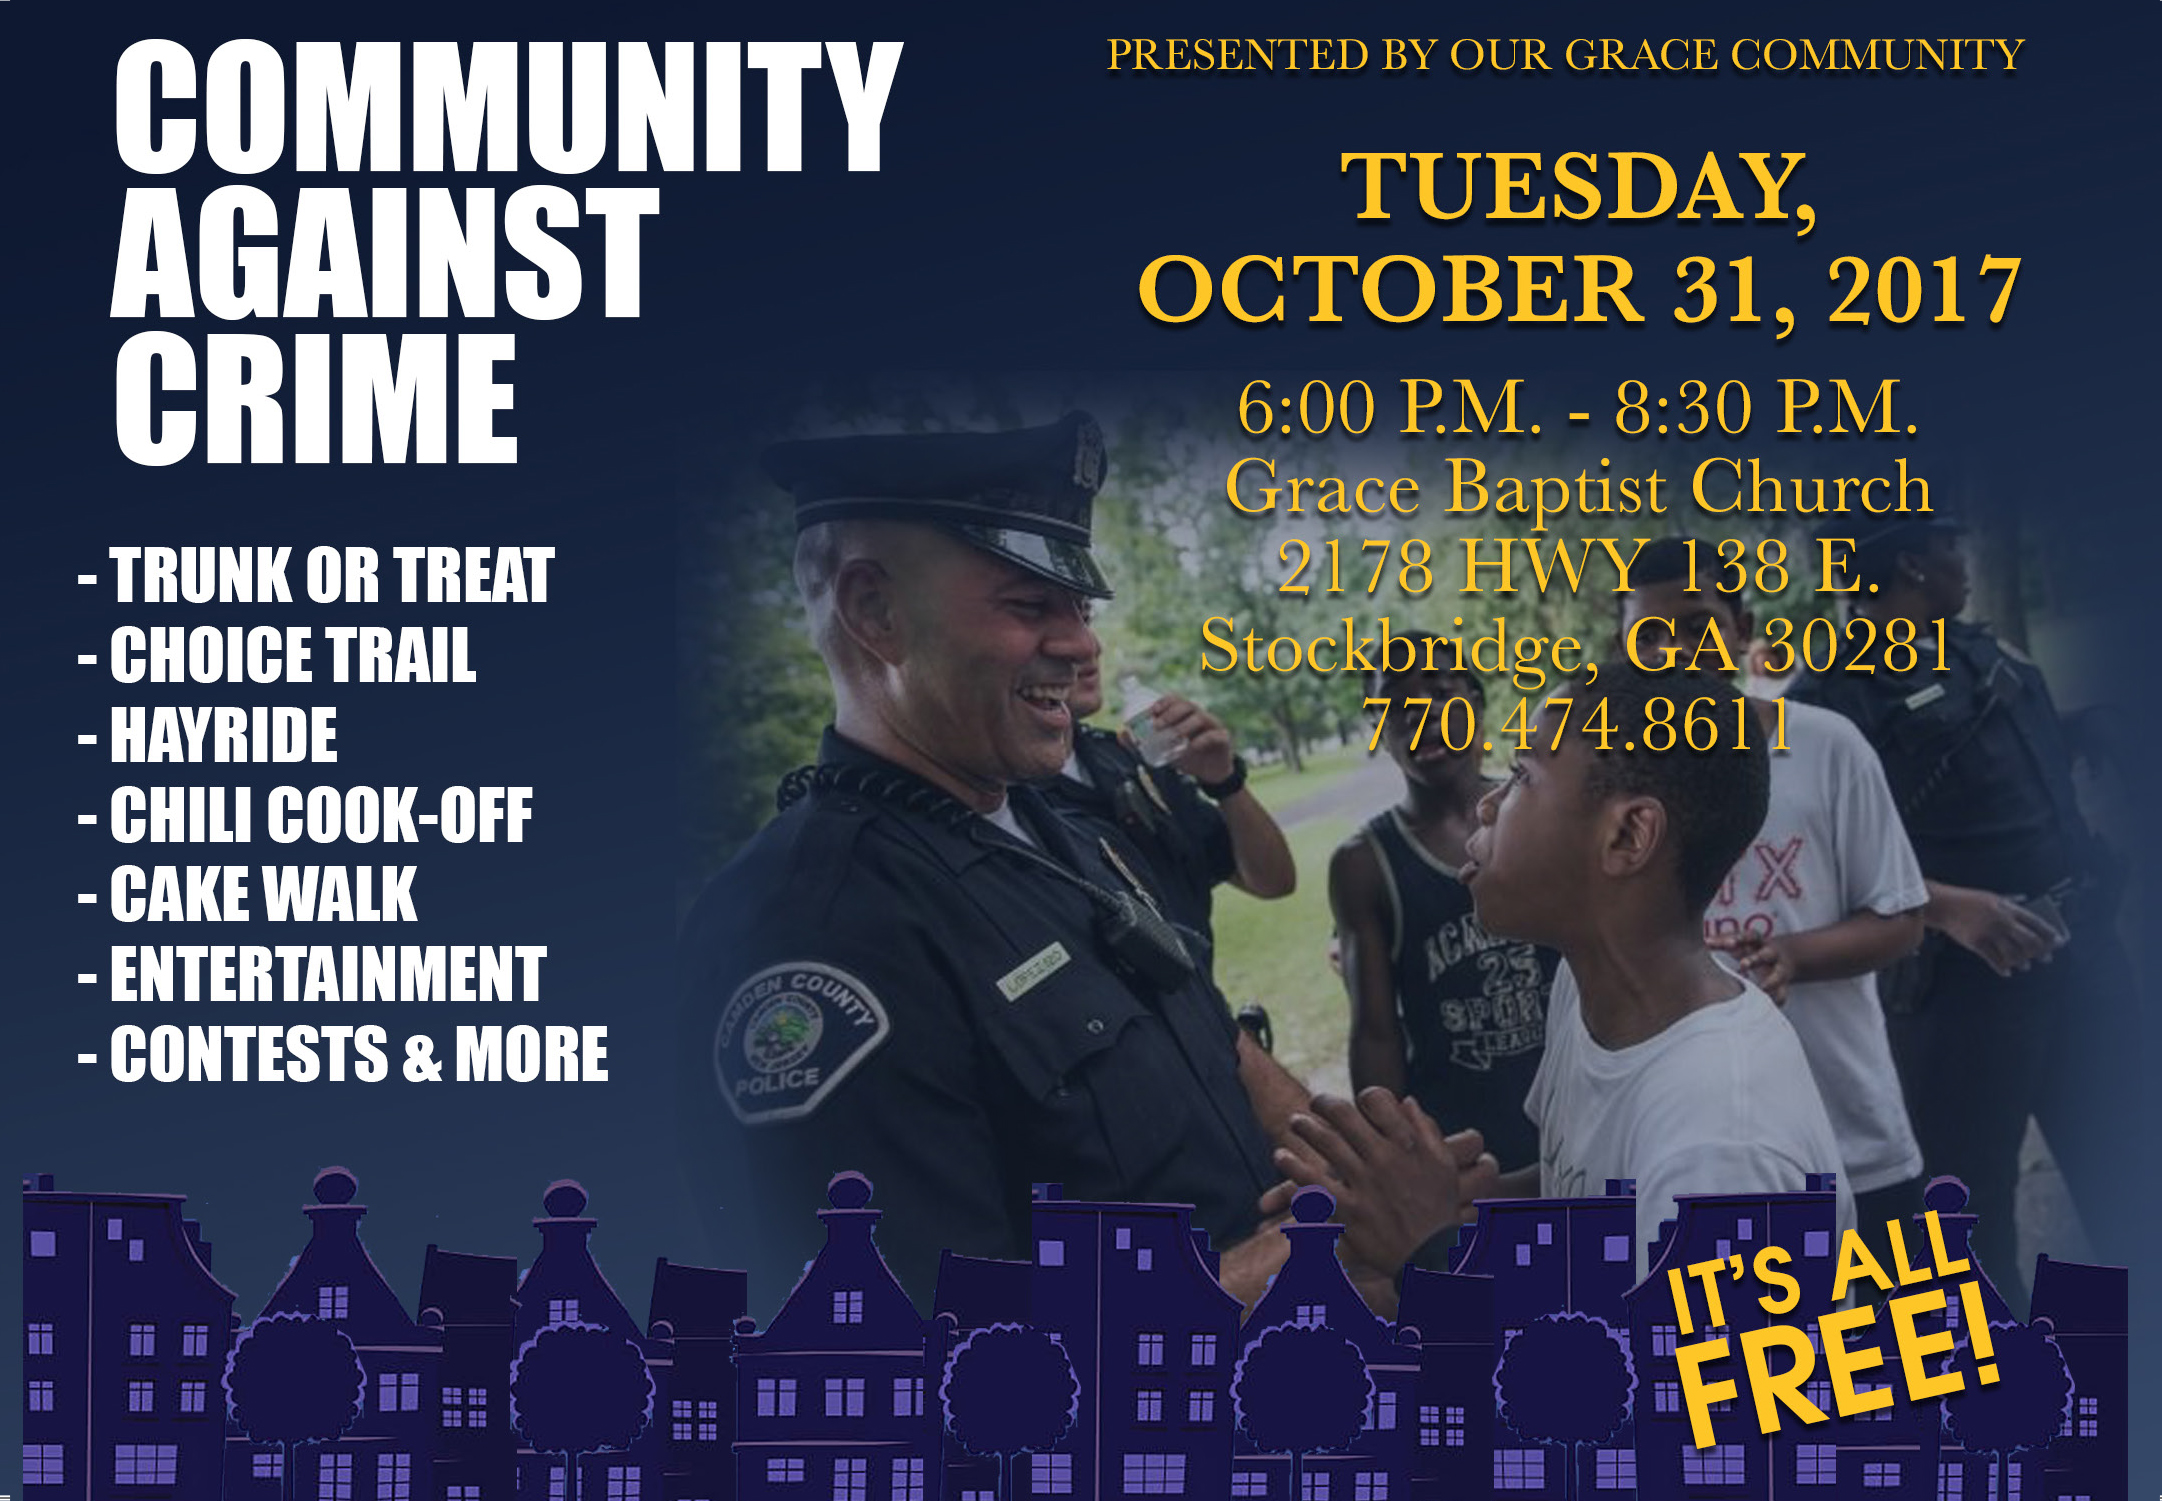 Community Against Crime Presented By Our Grace Community